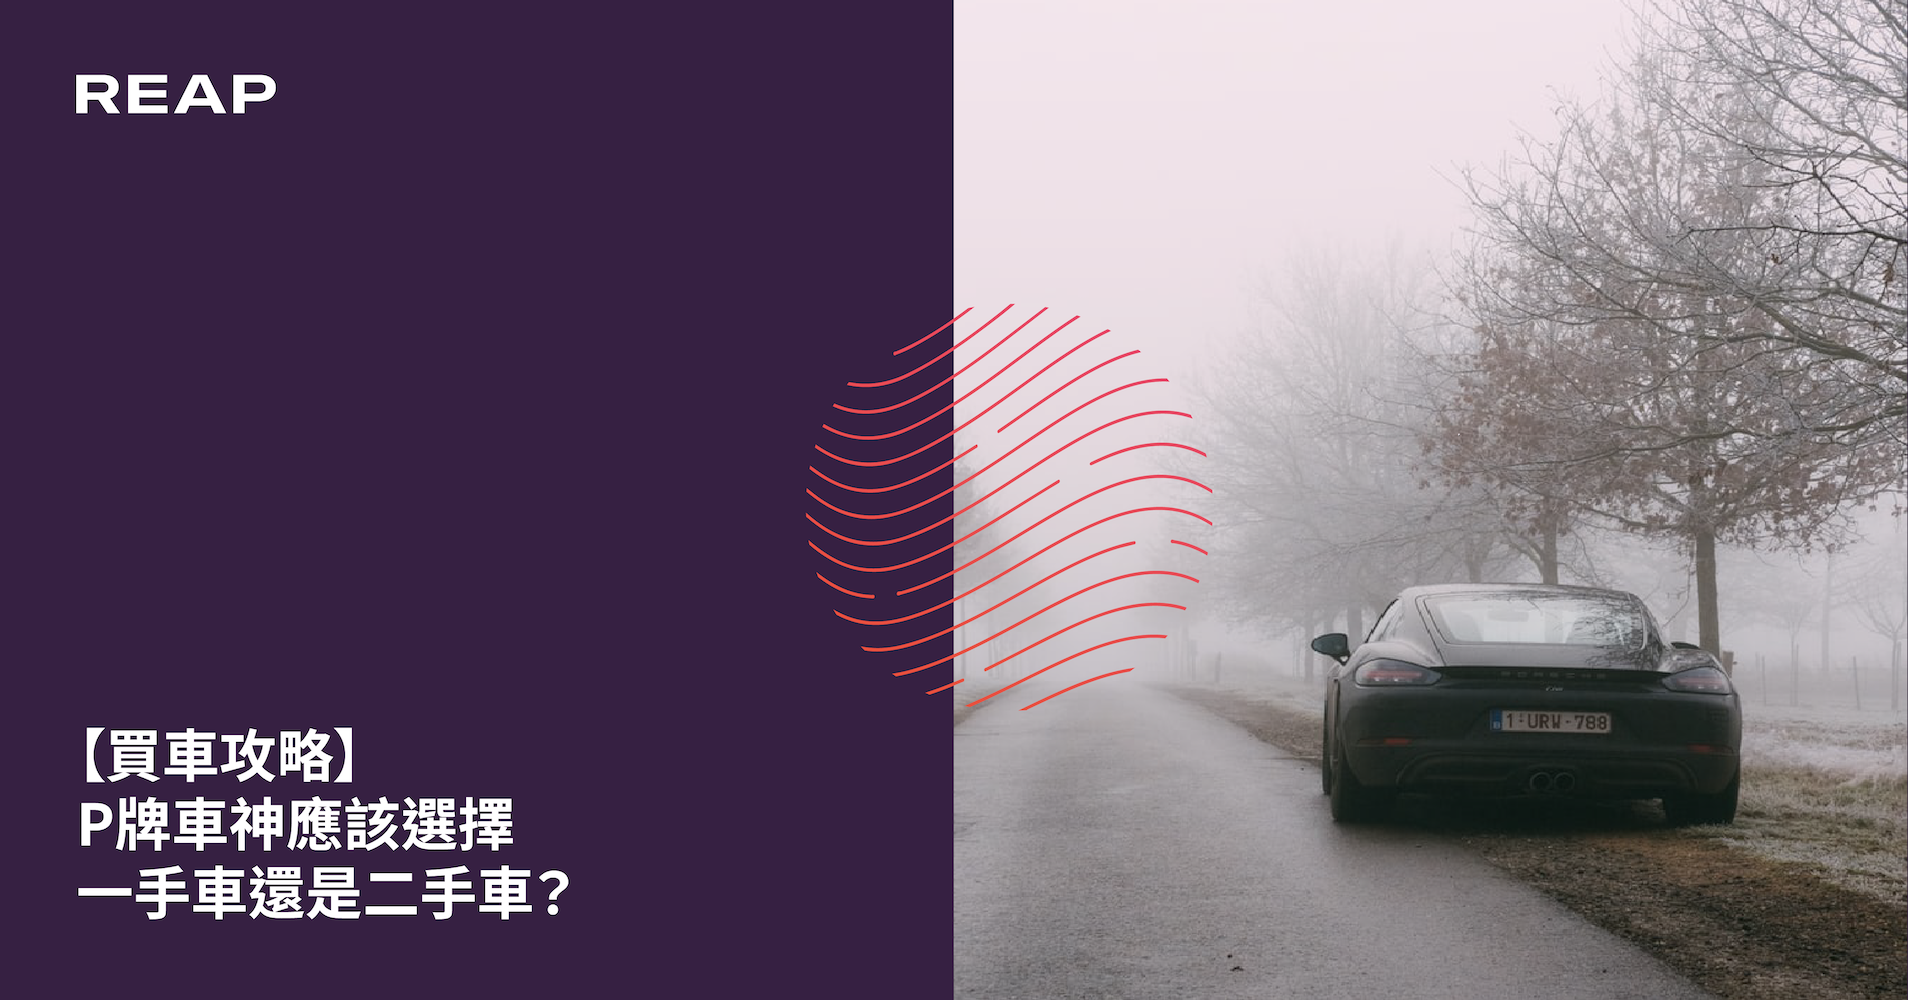 Cover Image for 【買車攻略】P牌車神應該選擇一手車還是二手車?